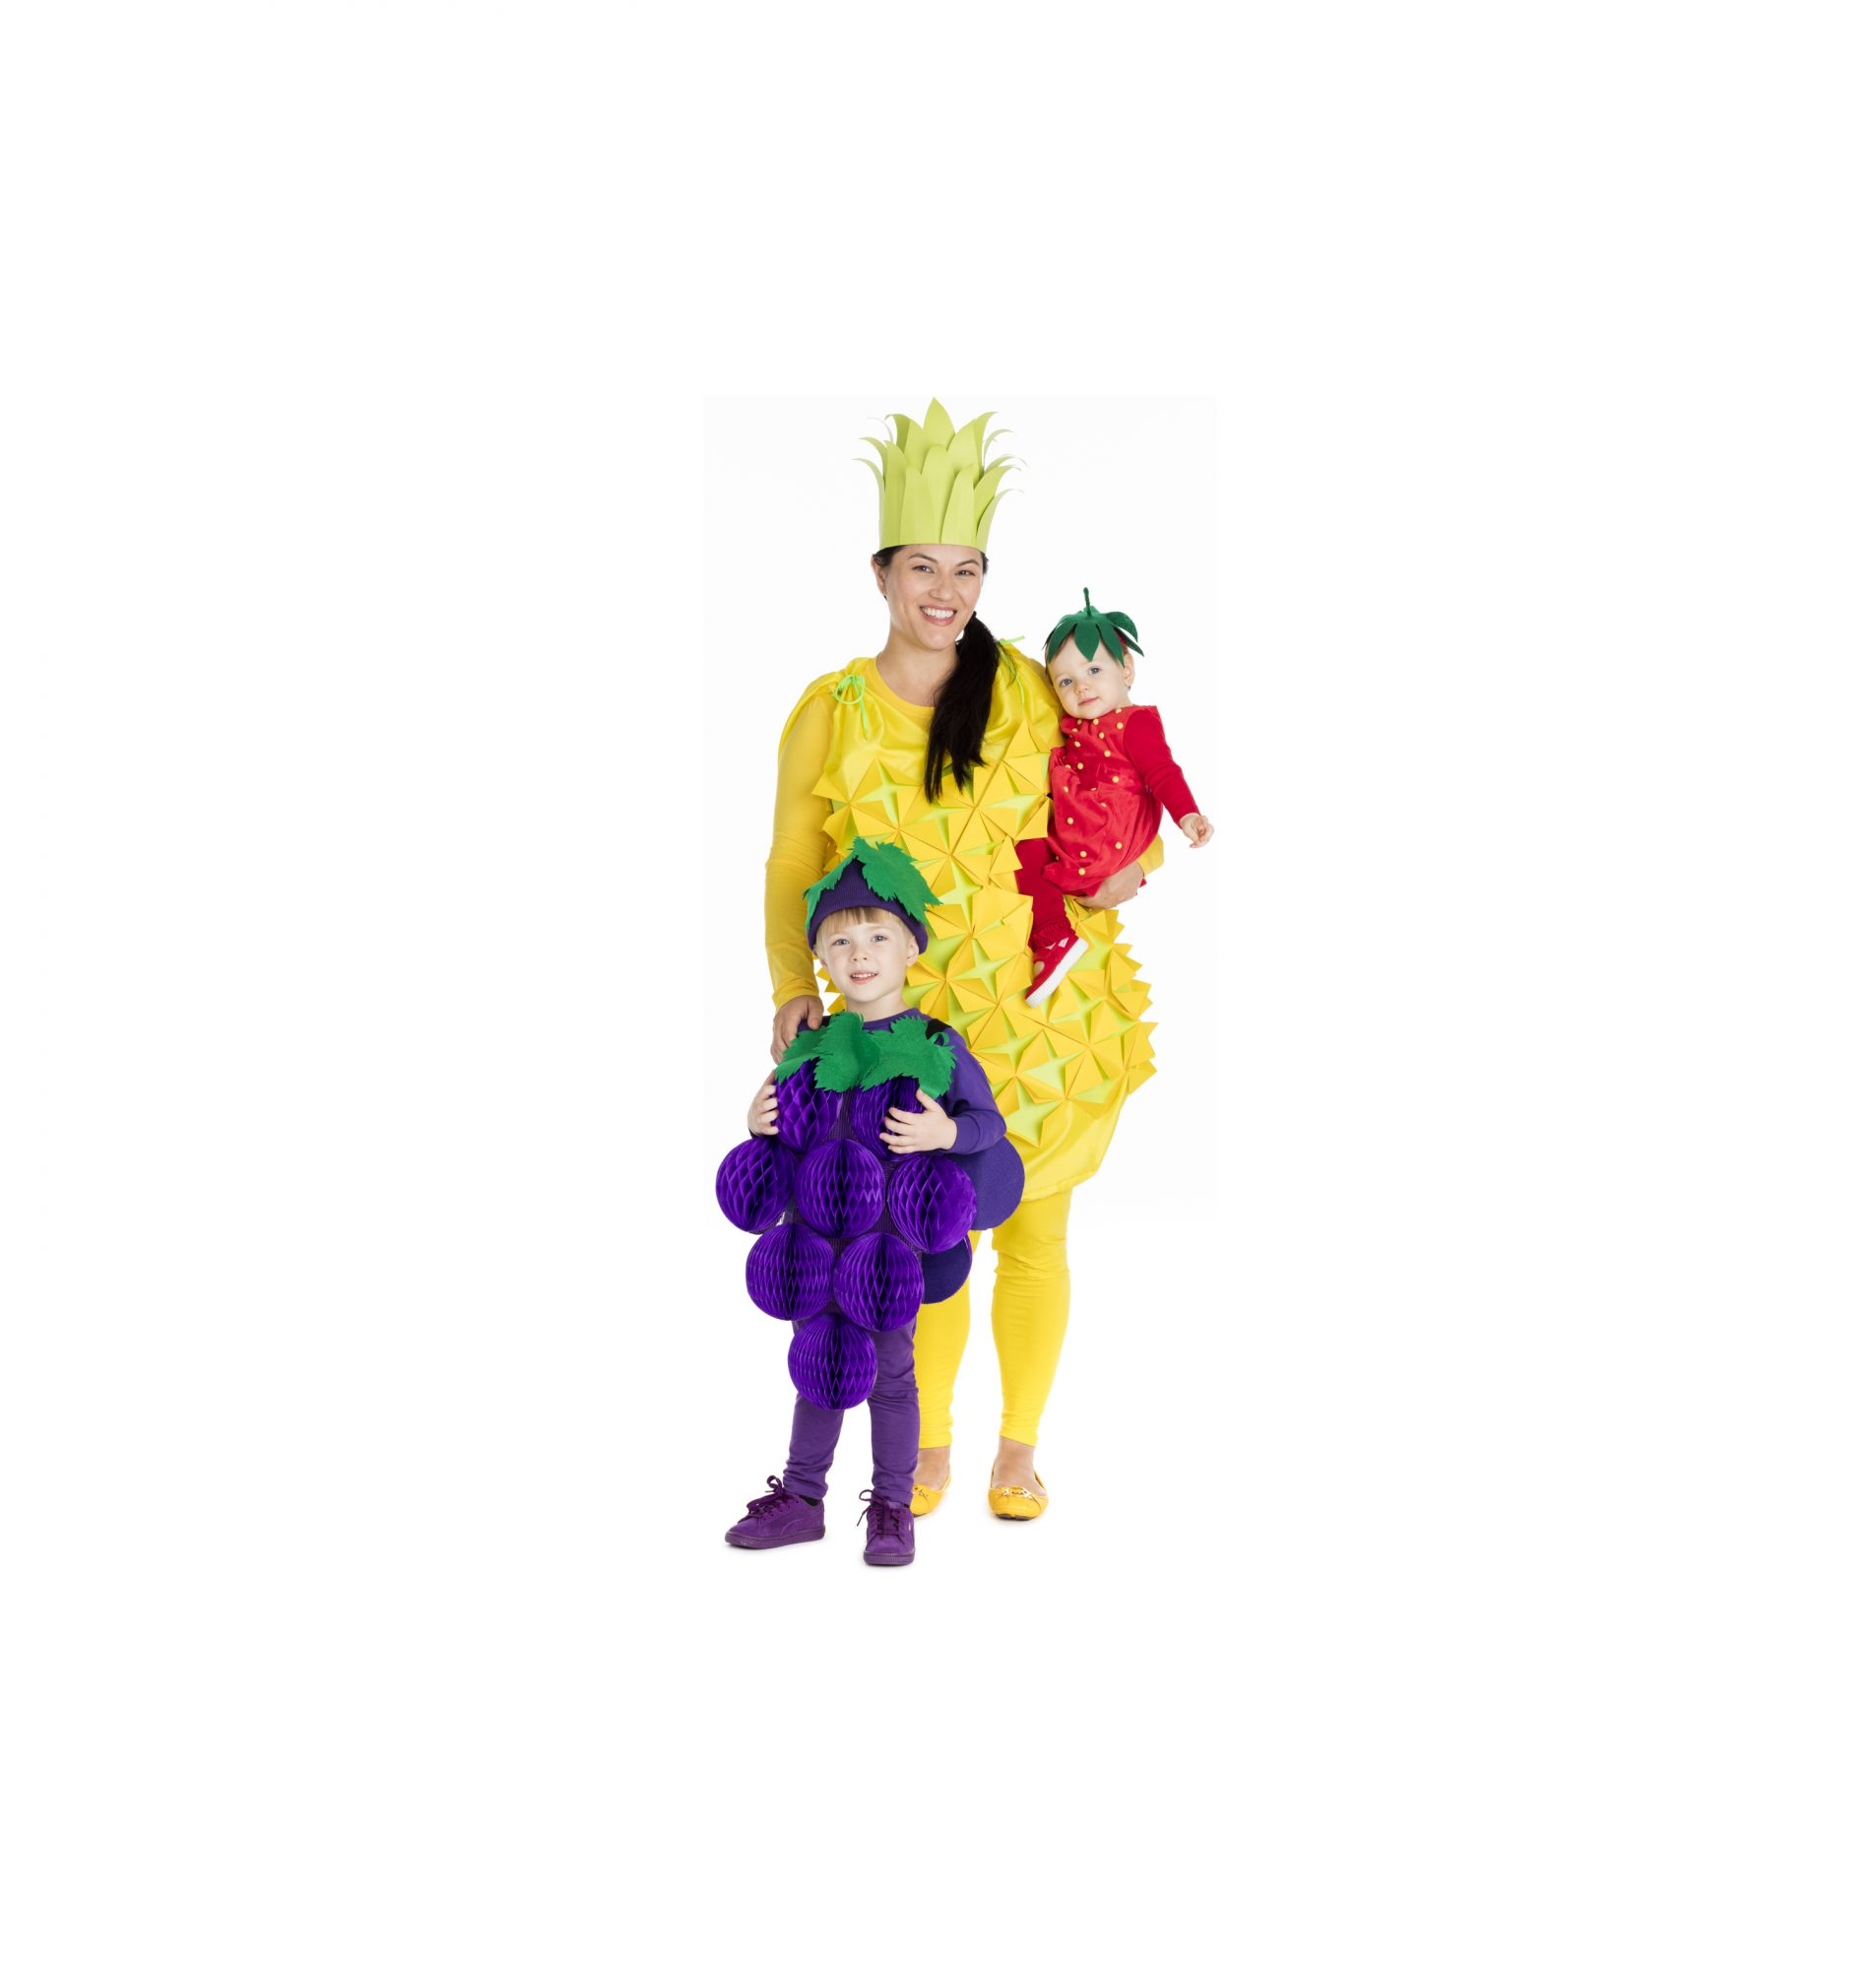 Fruit Group Costumes  sc 1 st  Real Simple & Group Halloween Costumes | Real Simple